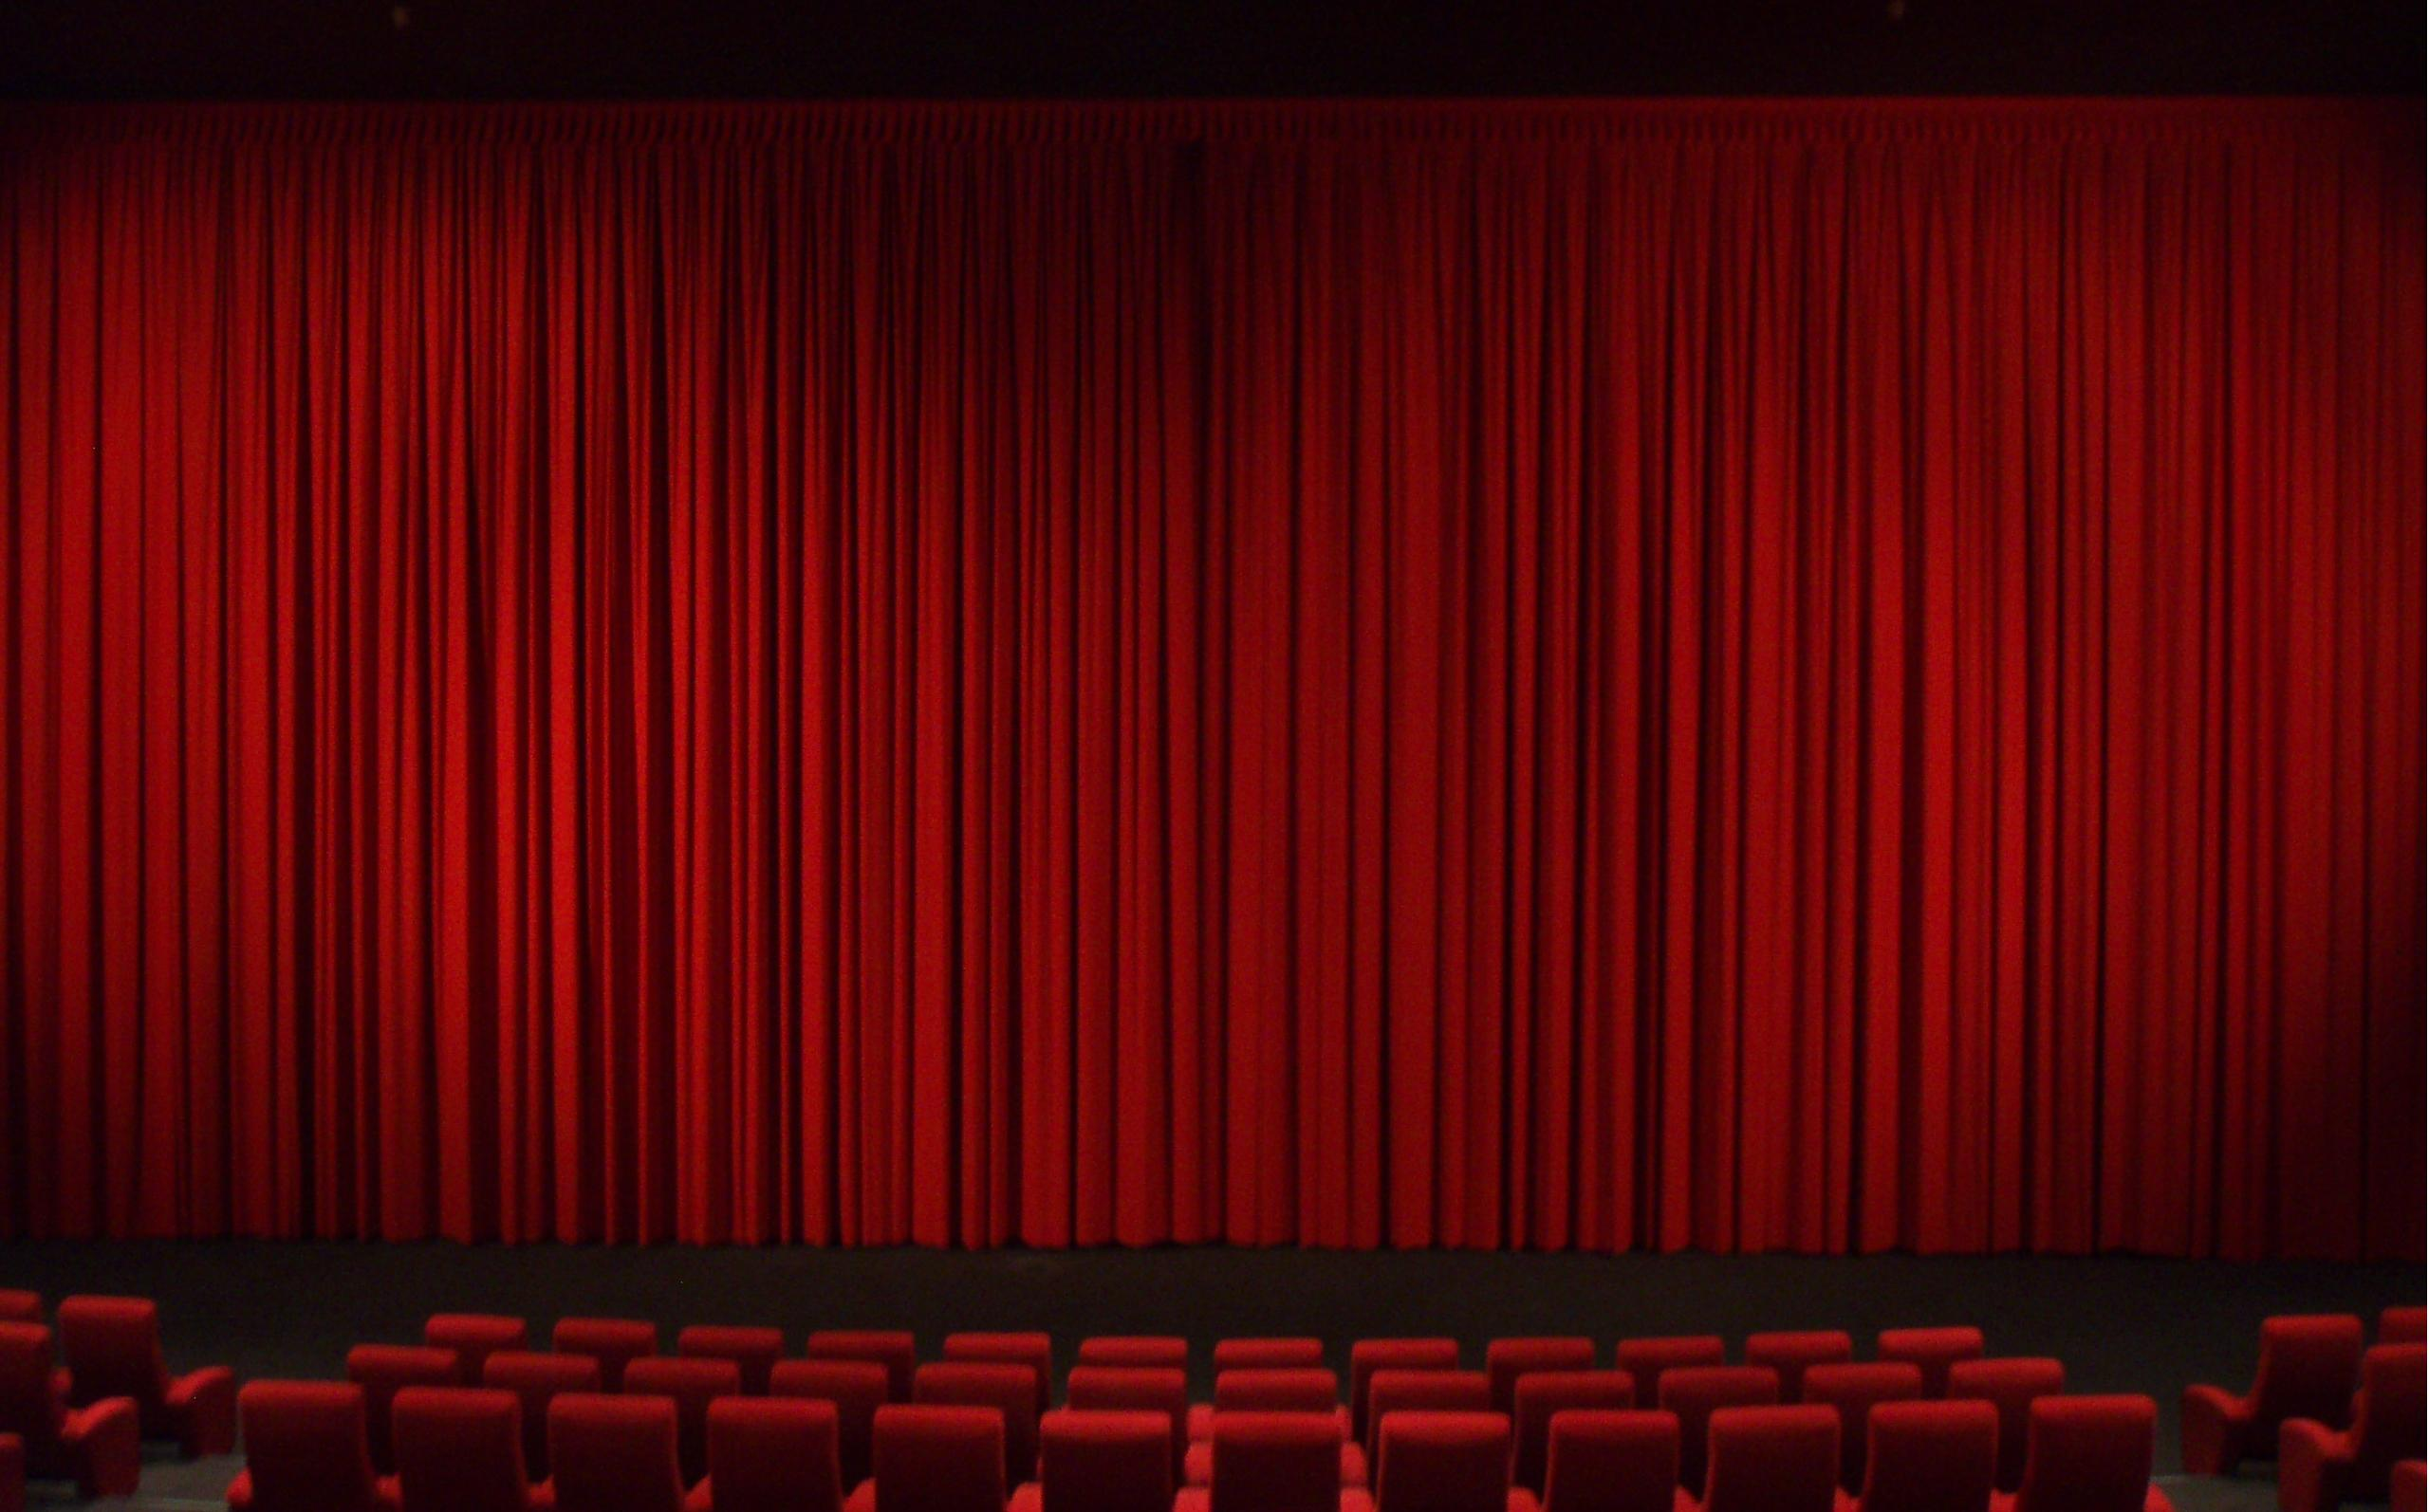 Free Movie Clipart 8068 further Cinema further Movie Clip Art Image 8551 further Royalty Free Stock Images Human Behind Podium 3d Image Image14058259 as well Curtains Stock 57797765. on oscar movie clip art